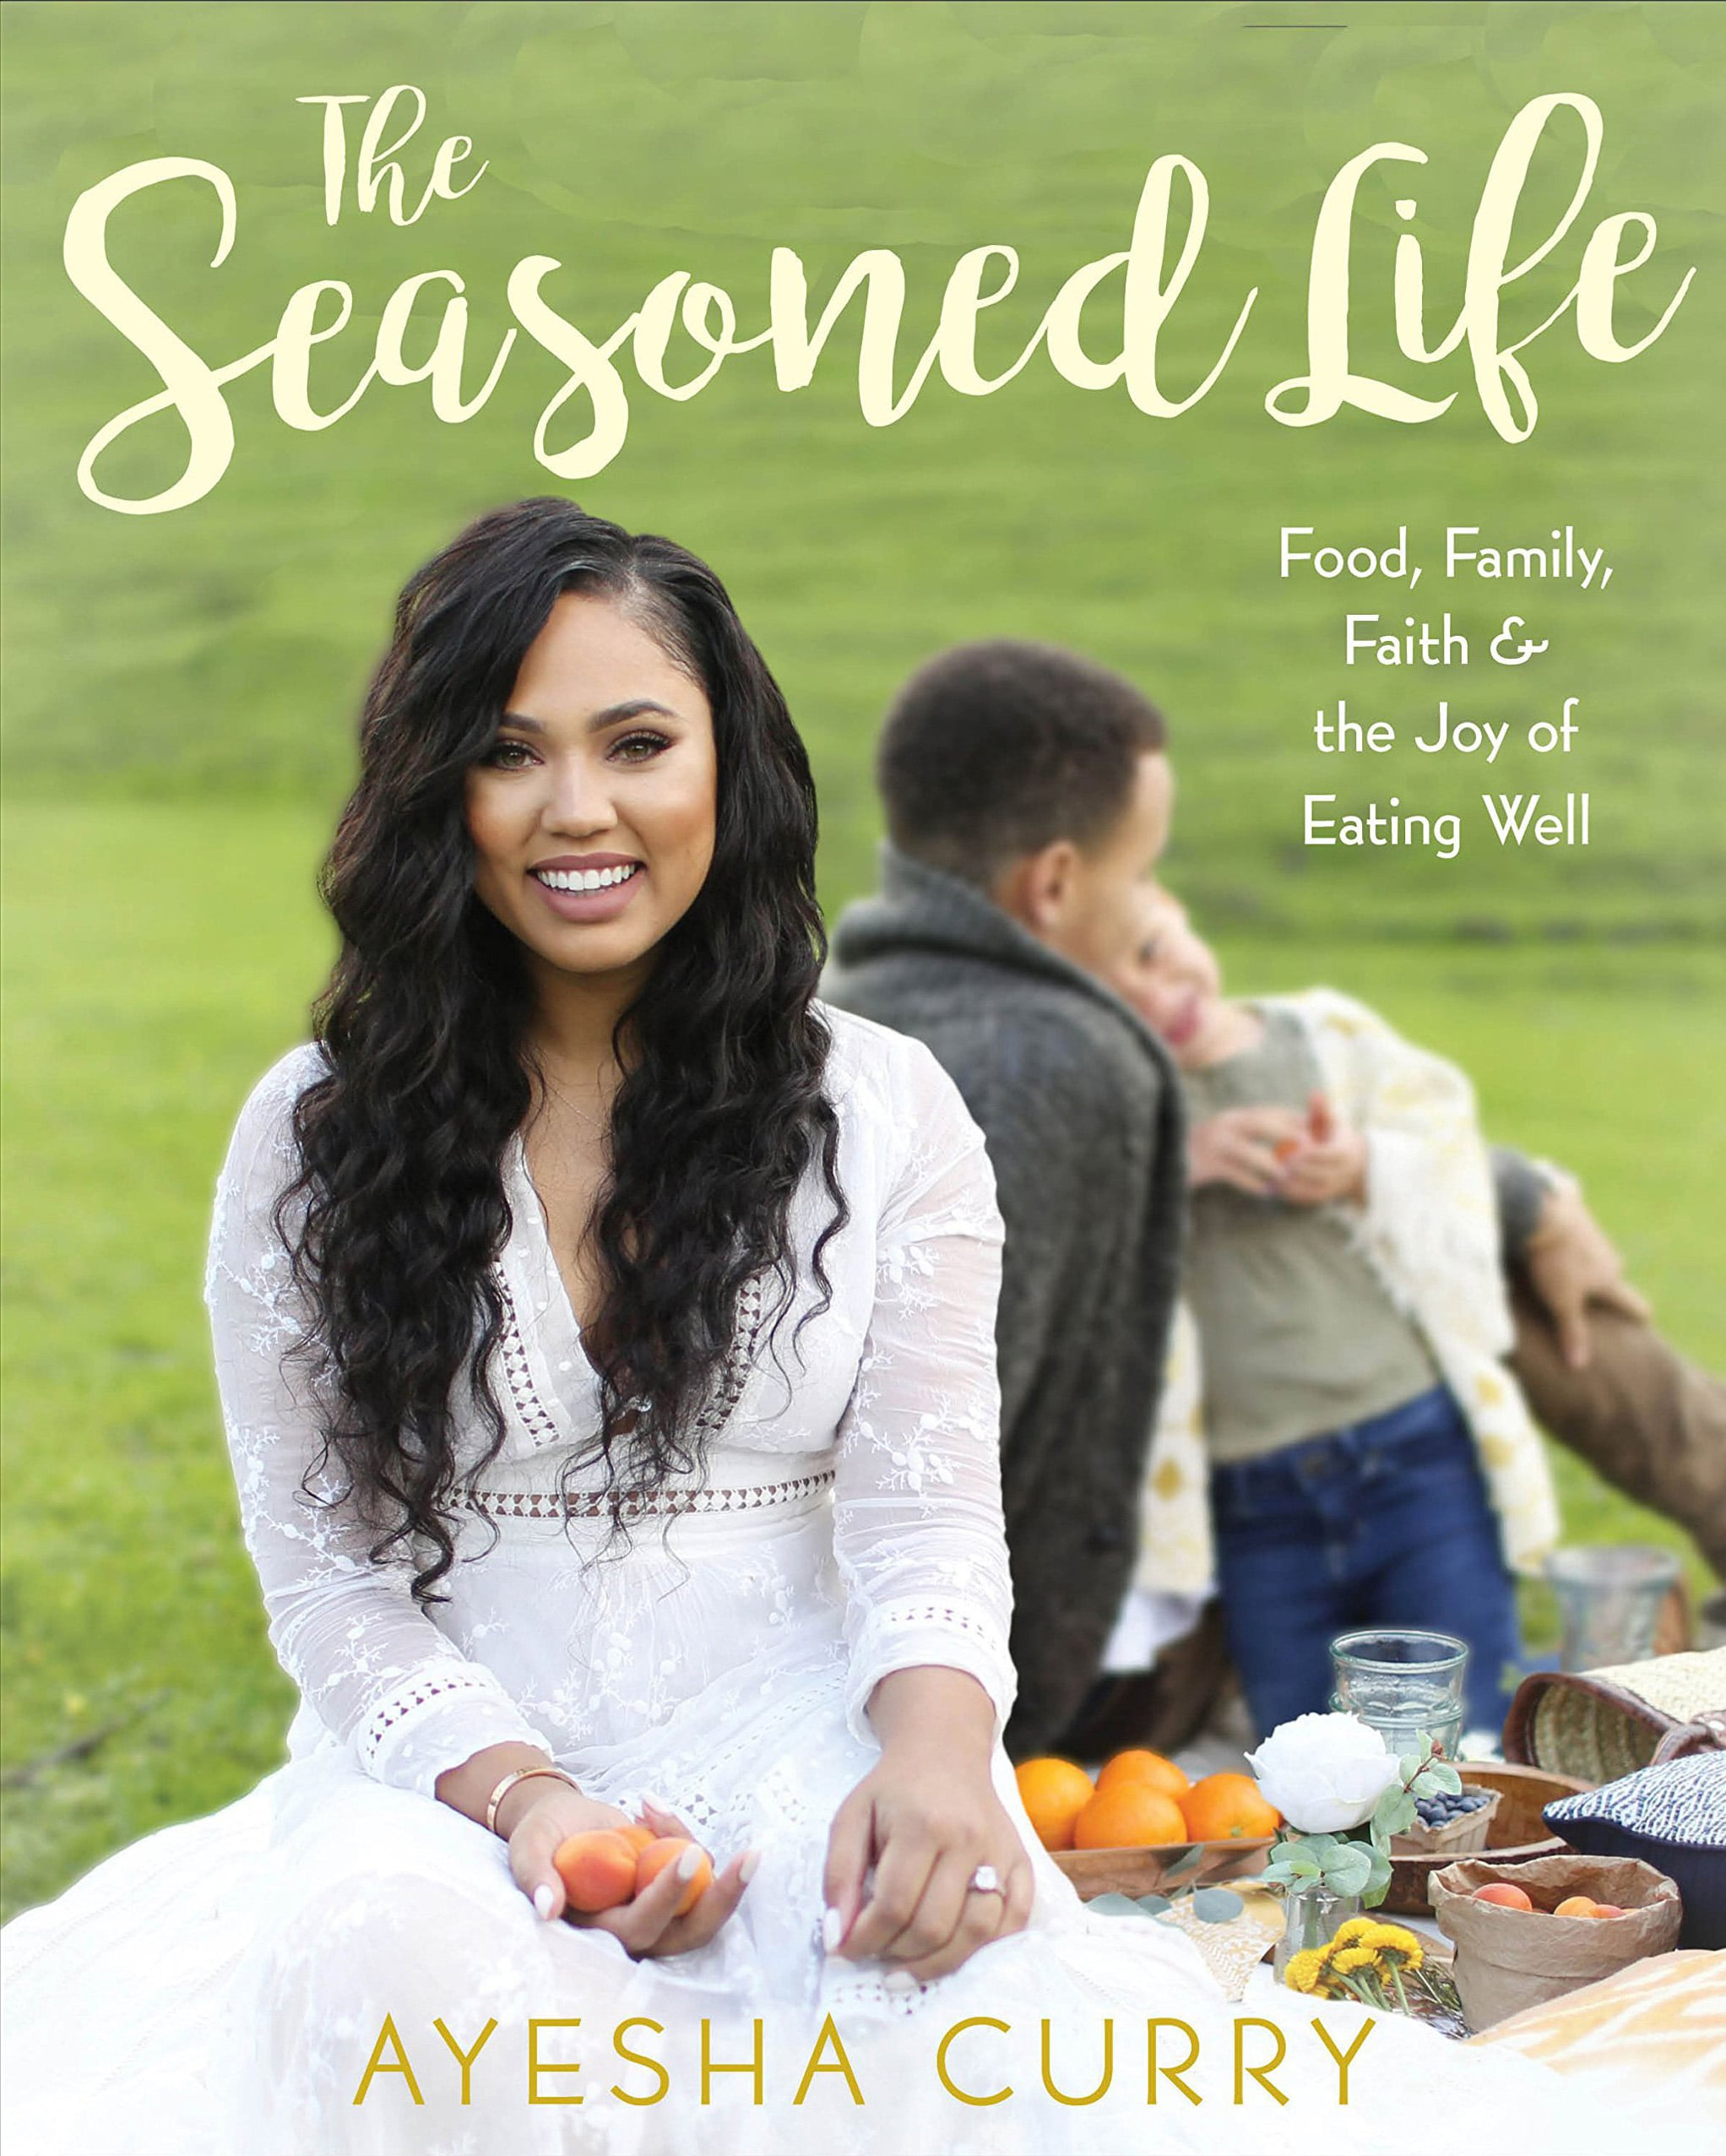 Ayesha currys the seasoned life cookbook review popsugar food is loved in my life somehow involves and revolves around food ayesha curry says in the introduction of her new cookbook the seasoned life food forumfinder